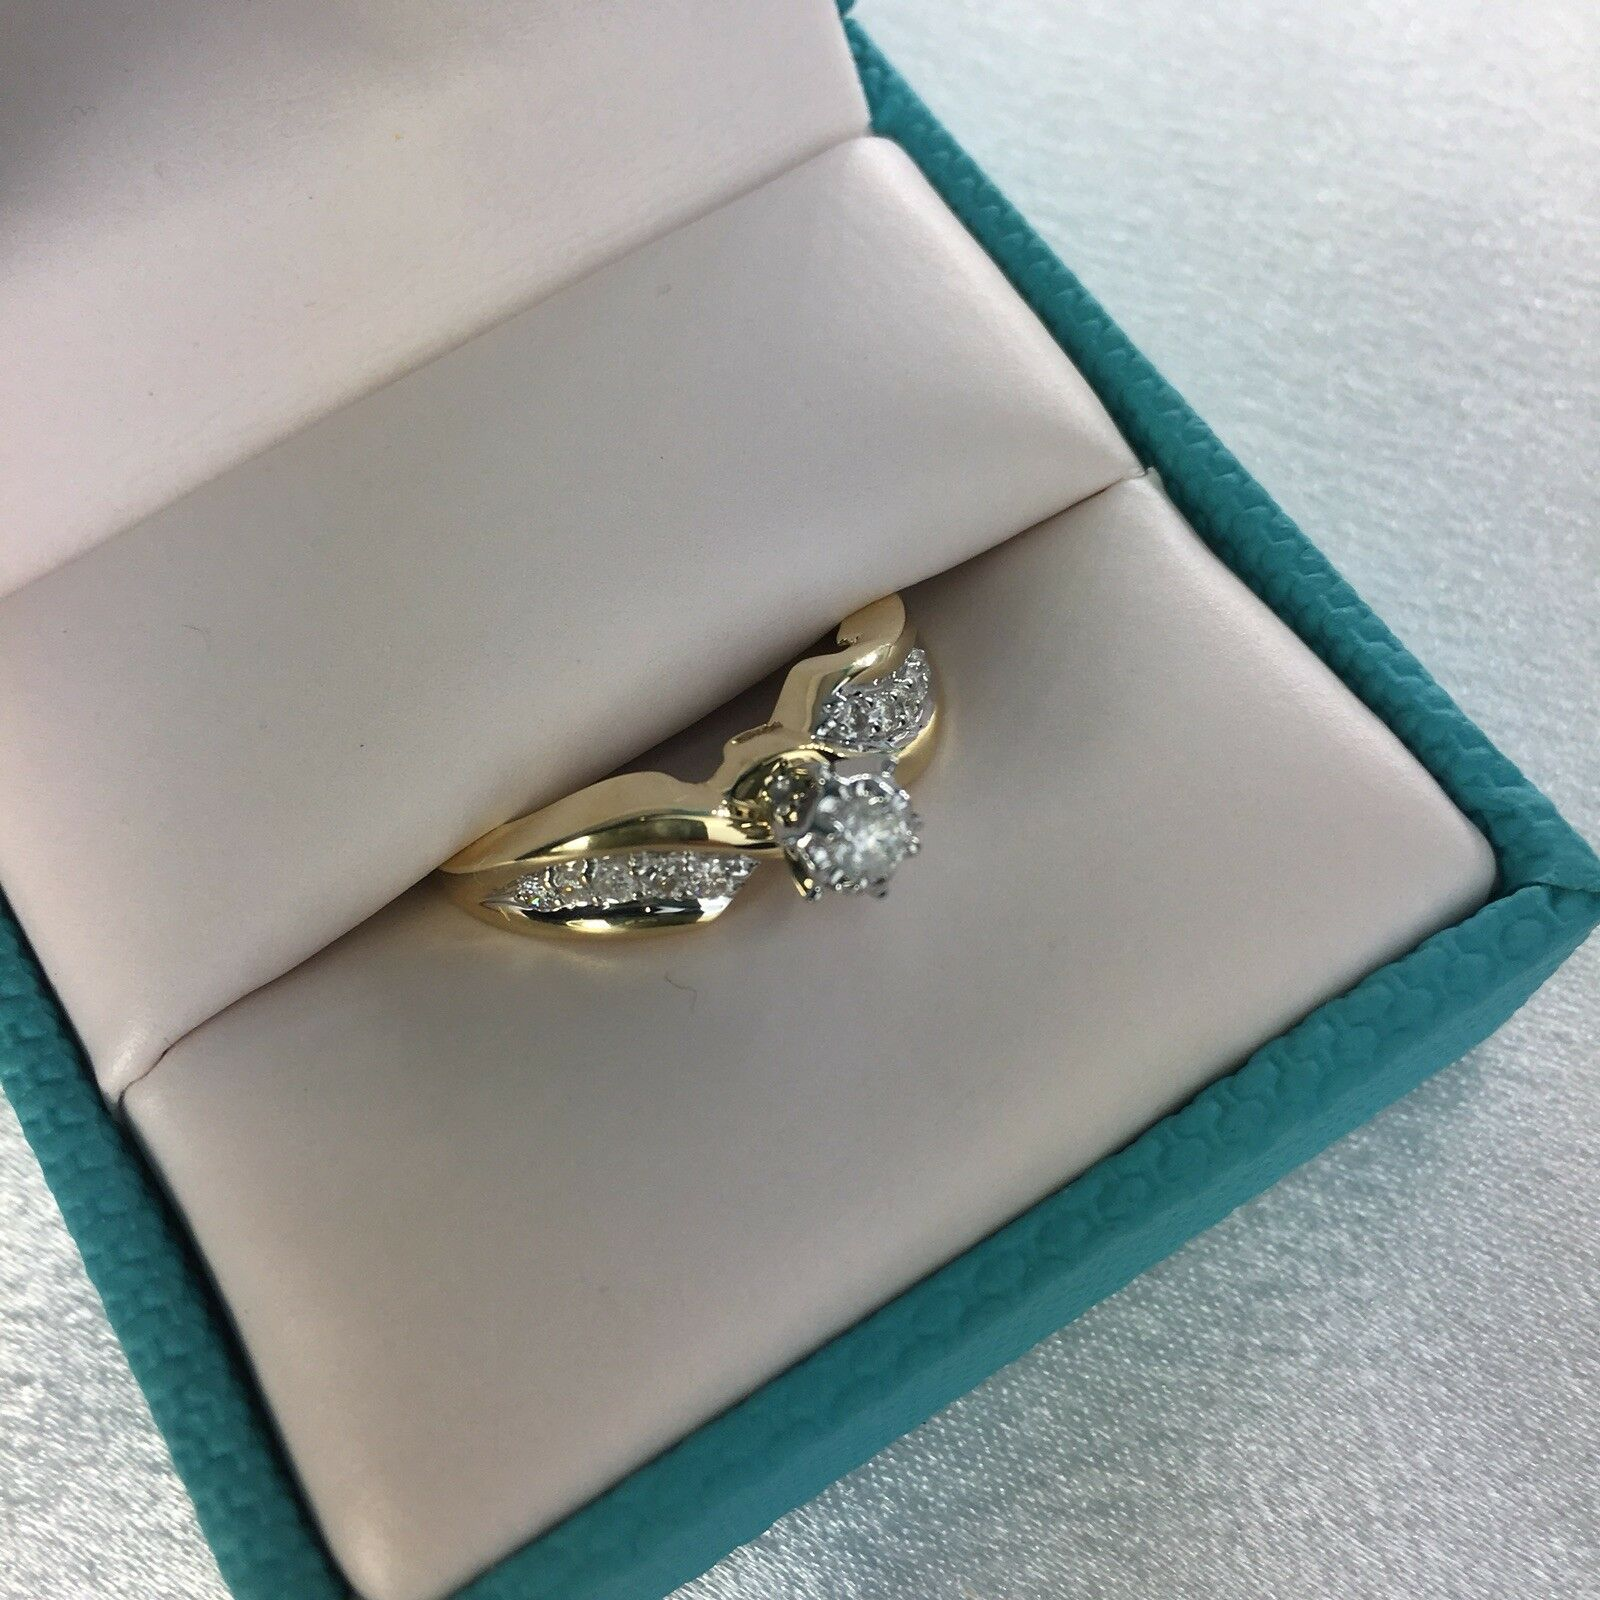 10 K Yellow gold And Diamond Solitaire Ring Size 7